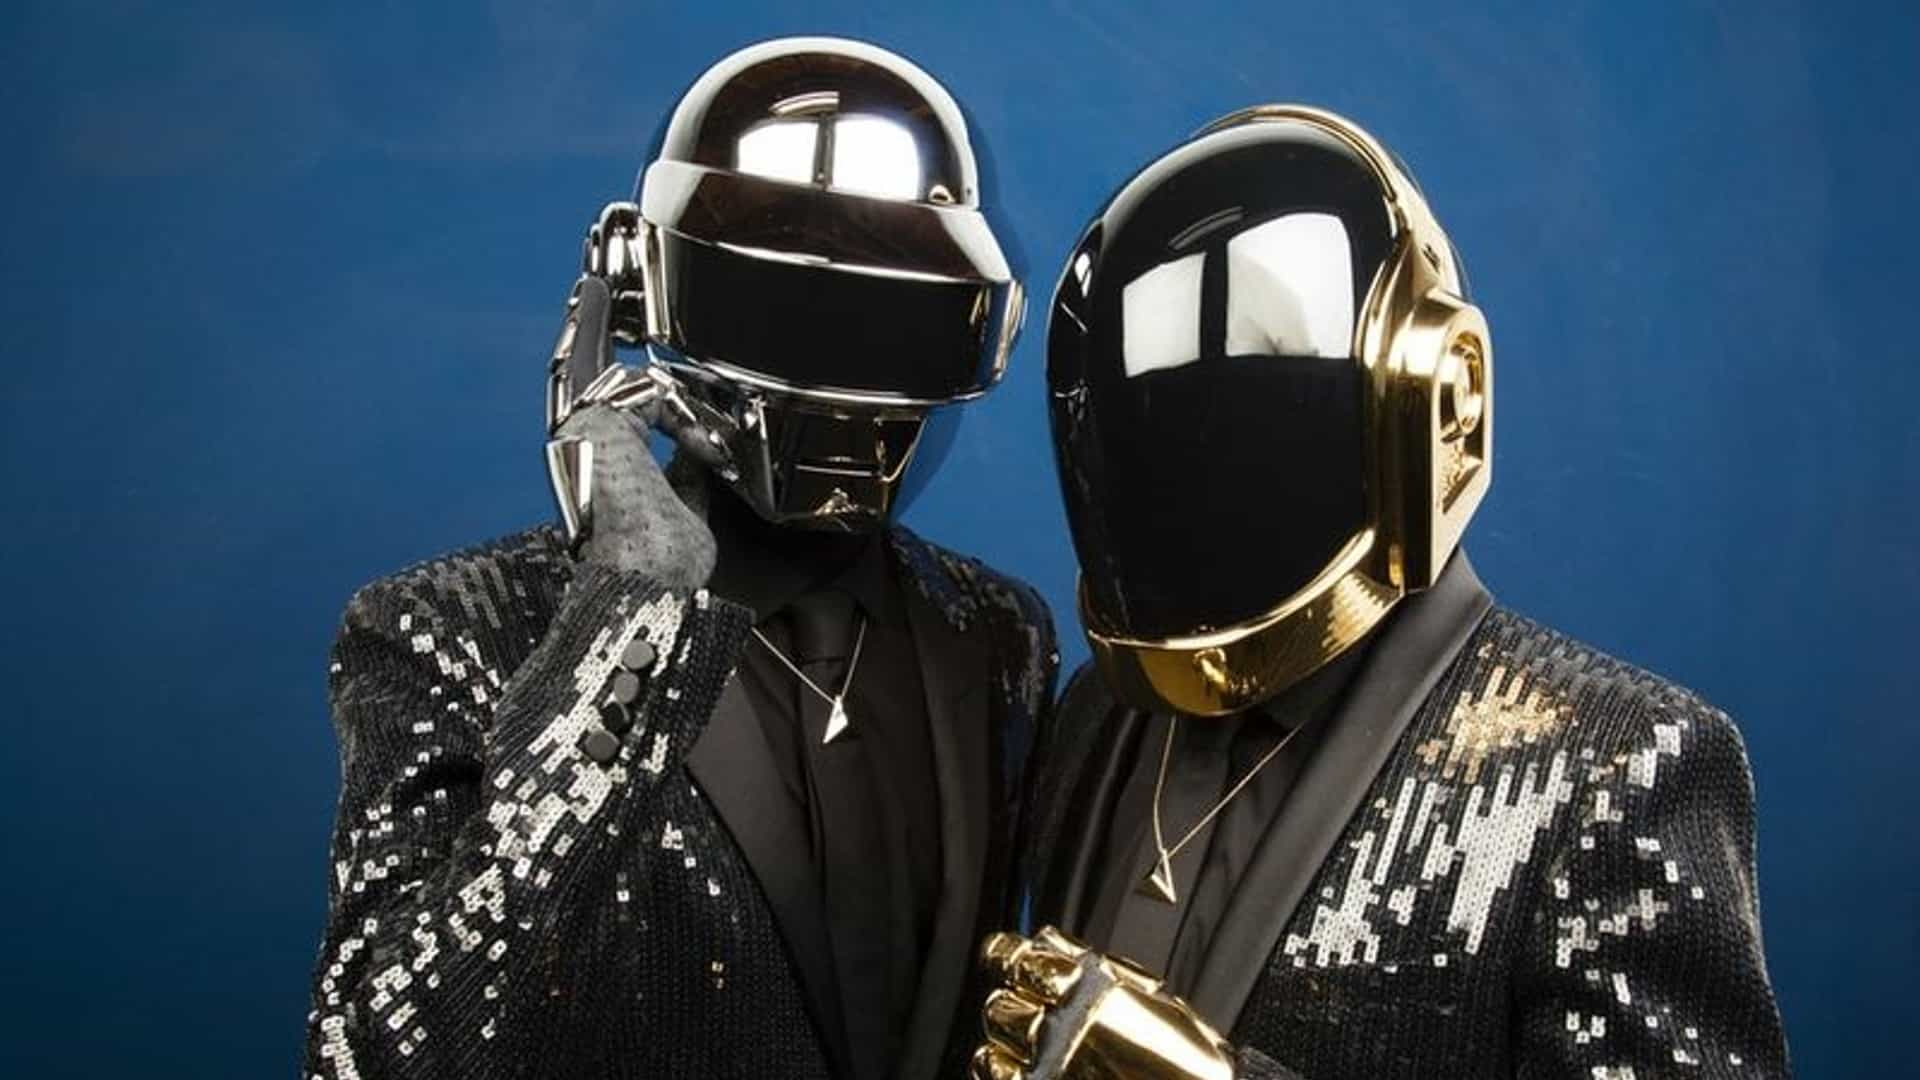 Daft Punk announce break up after 28 years